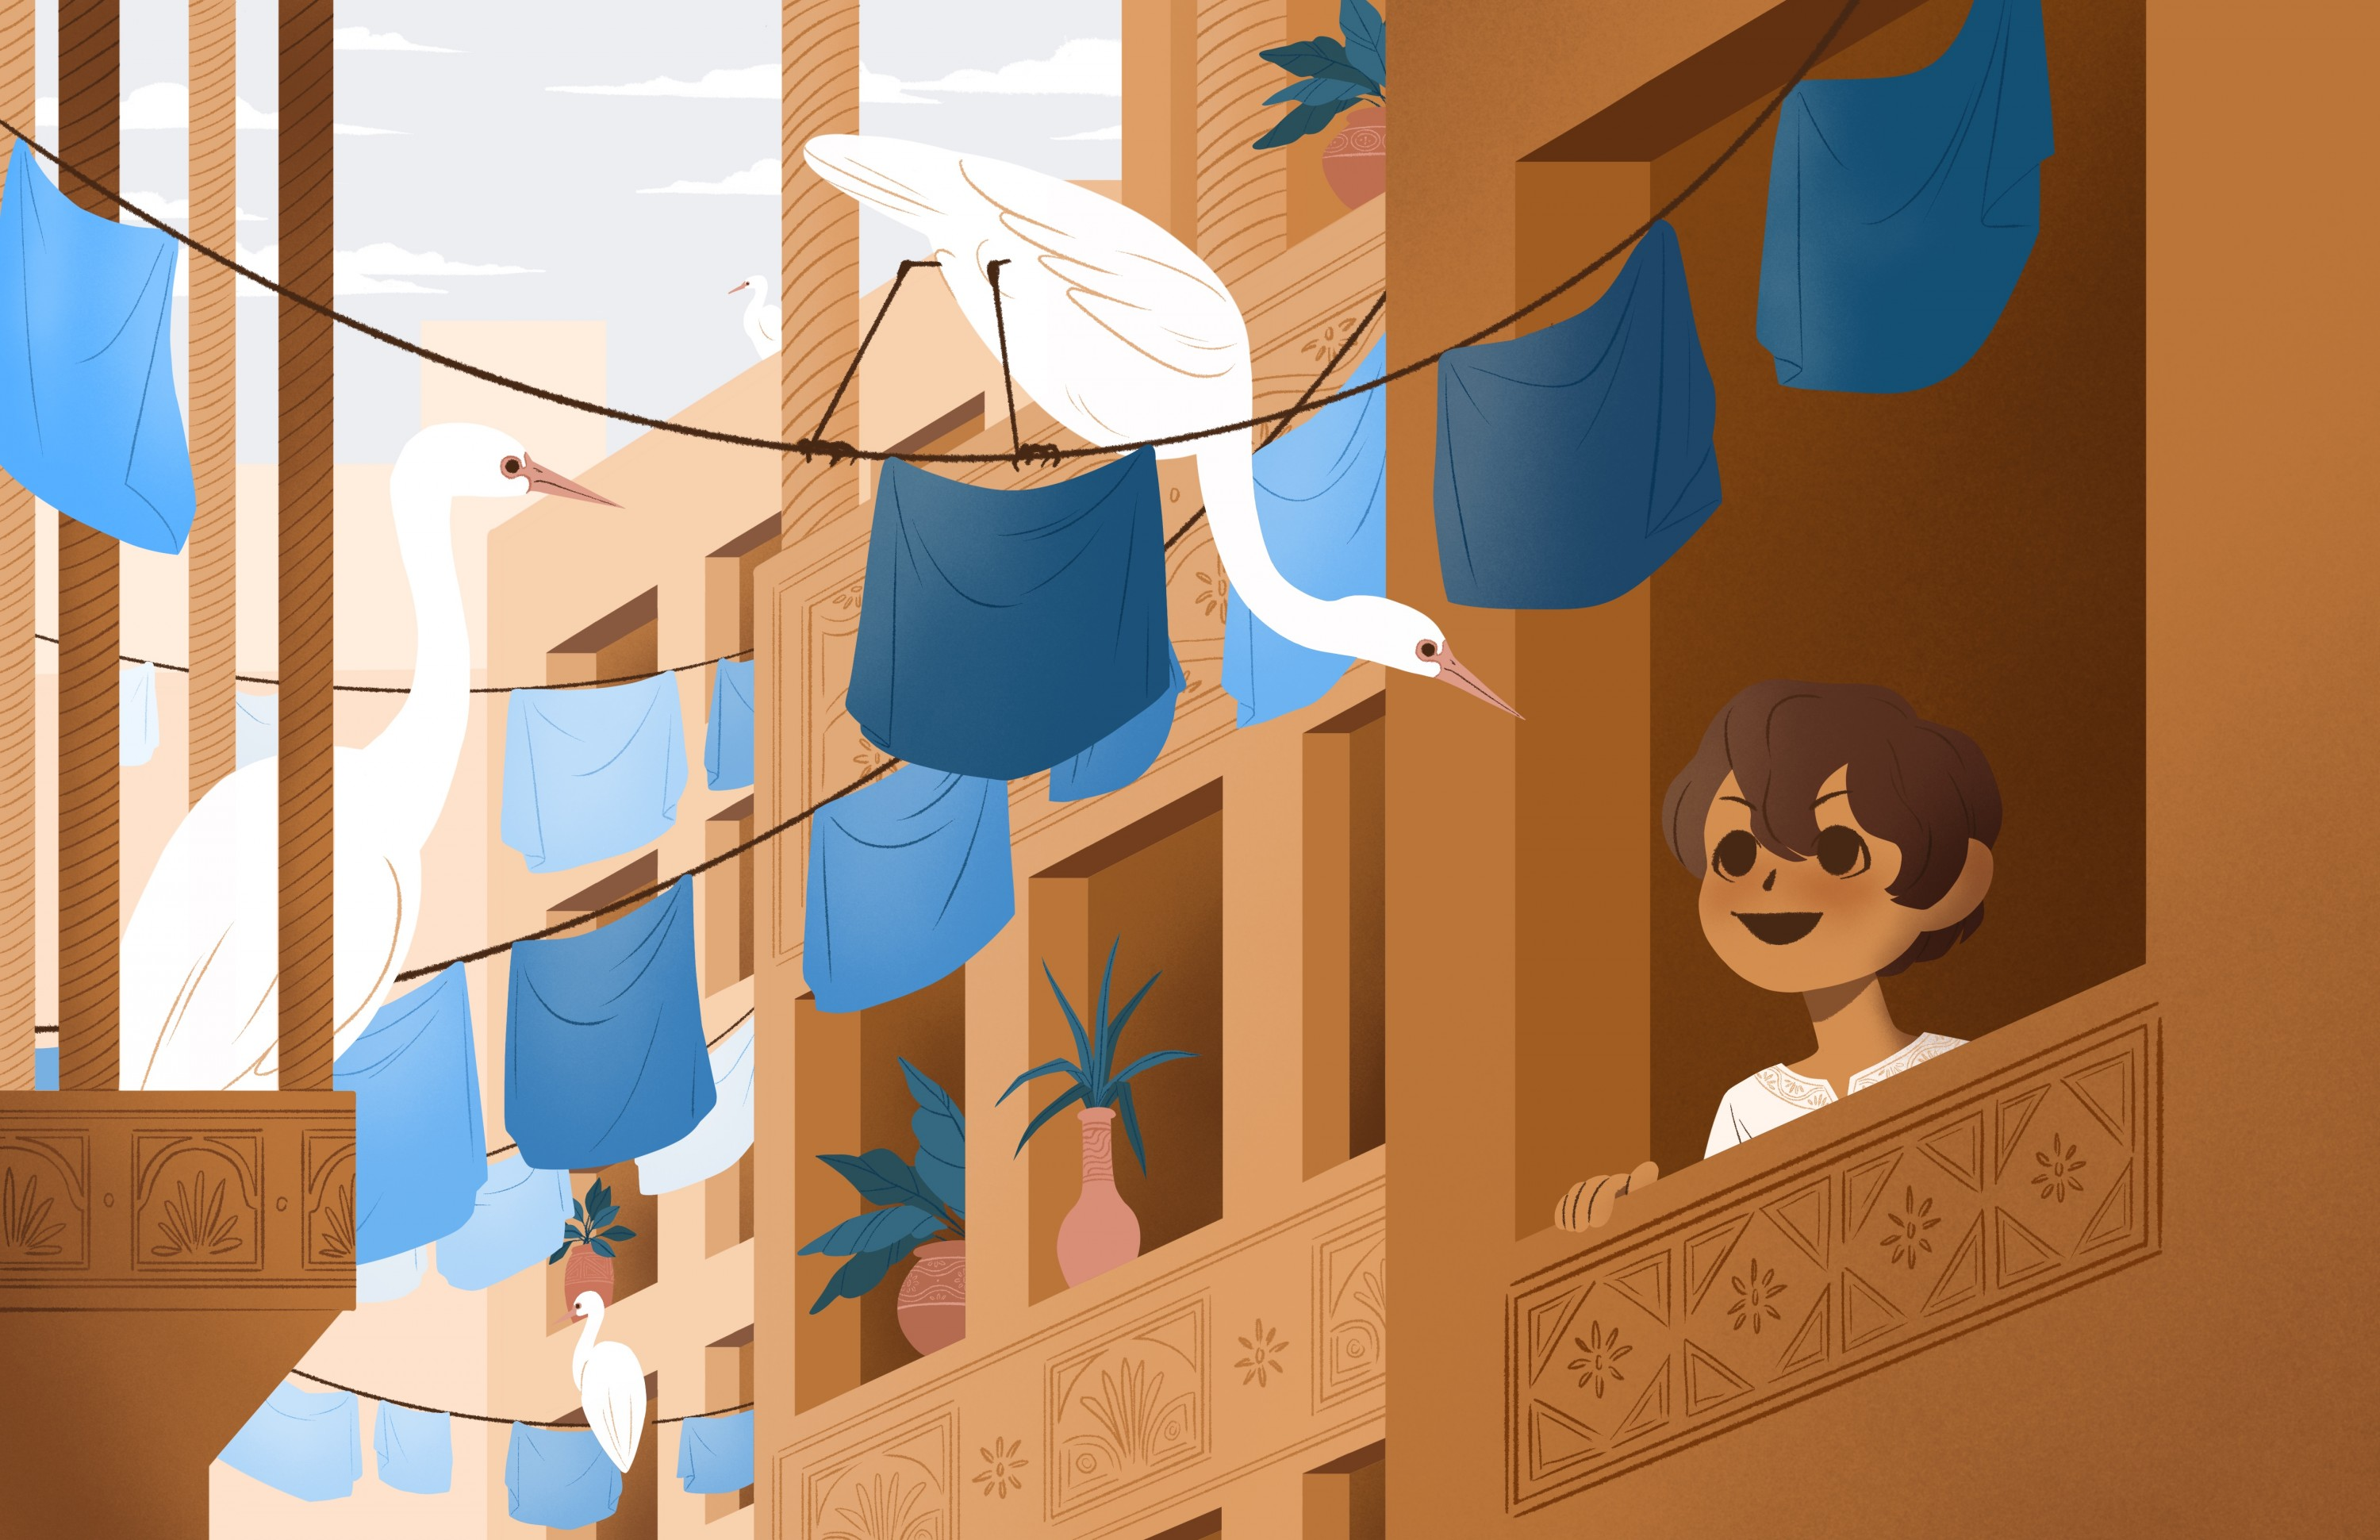 Illustration of a young child smiling at a flock of white birds sitting on a clothesline.